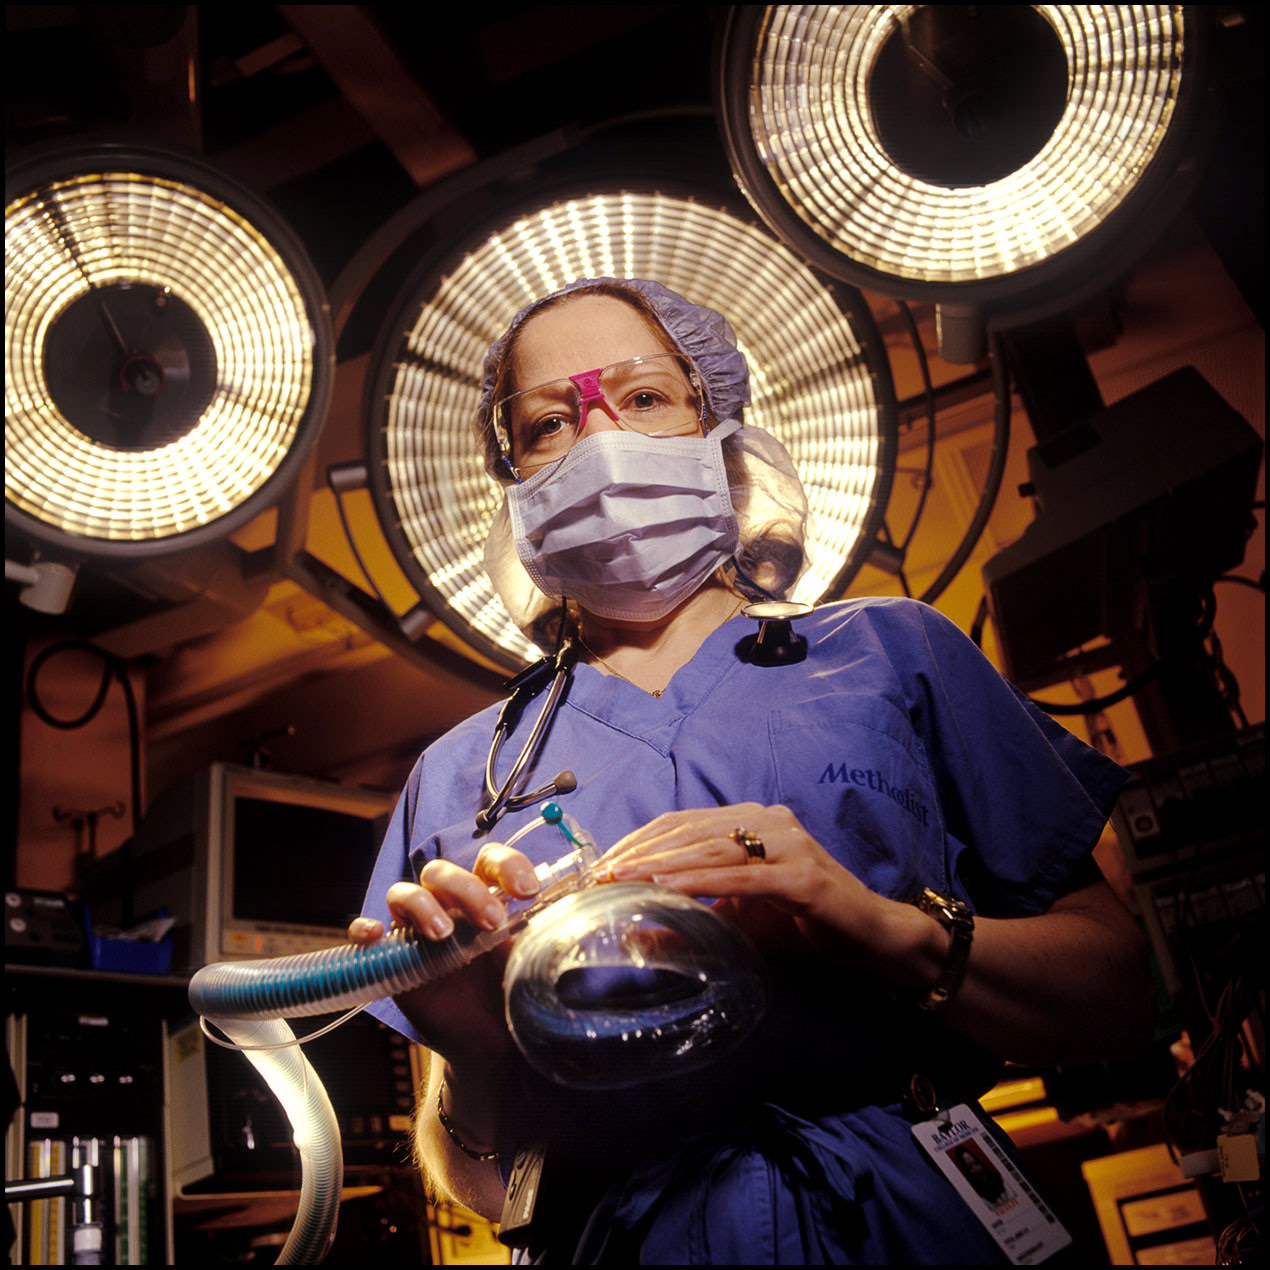 Portrait of an anesthesiologist in scrubs and face mask inside an operating room.